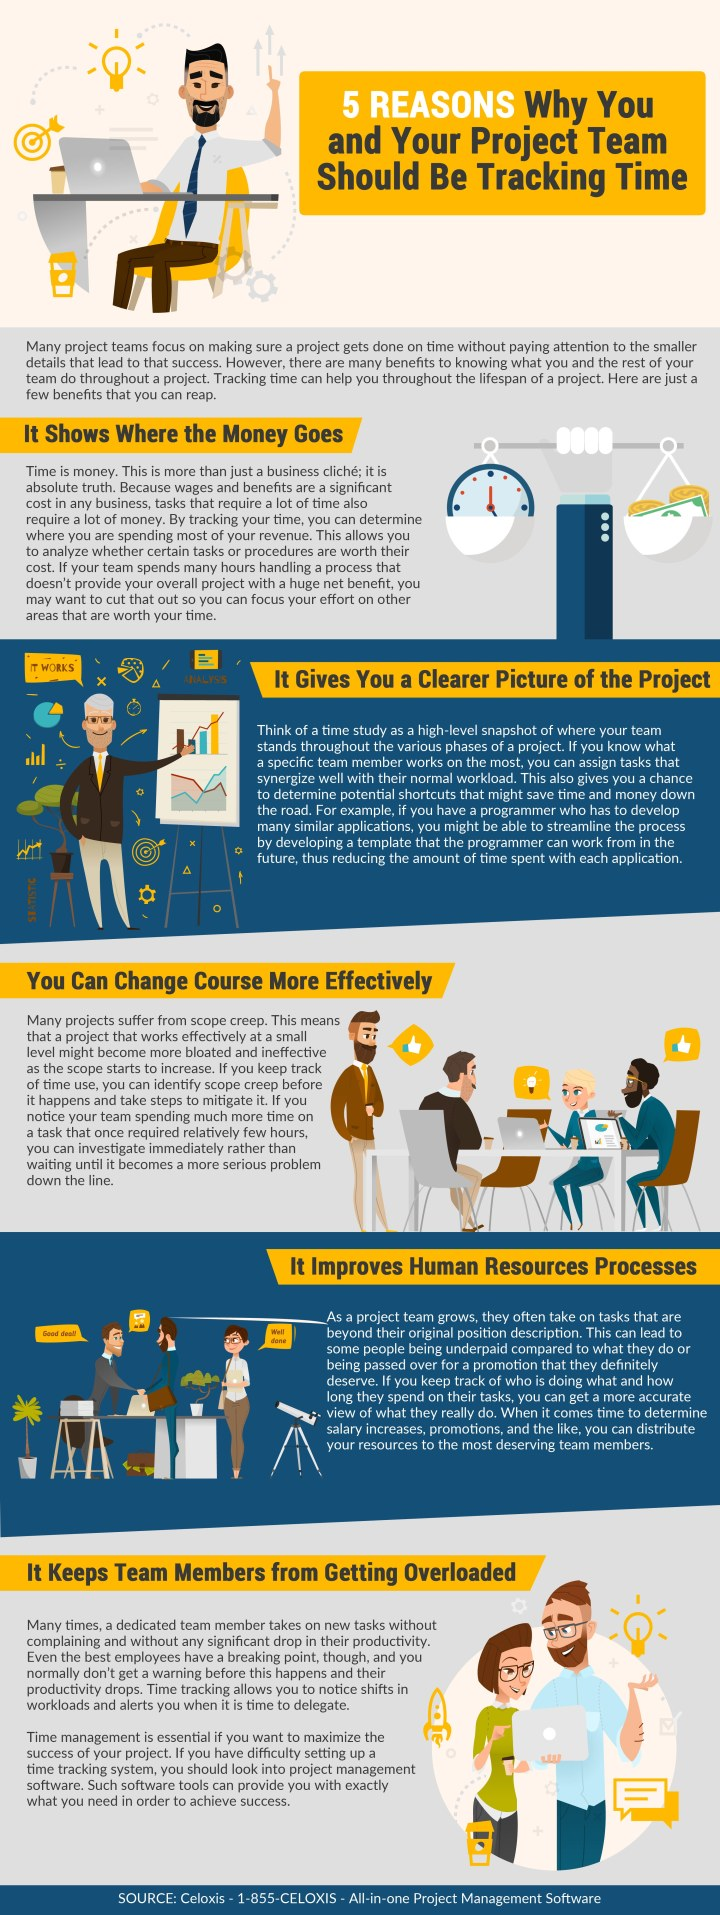 INFOGRAPHIC: 5 Reasons Why You and Your Project Team Should Be Tracking Time